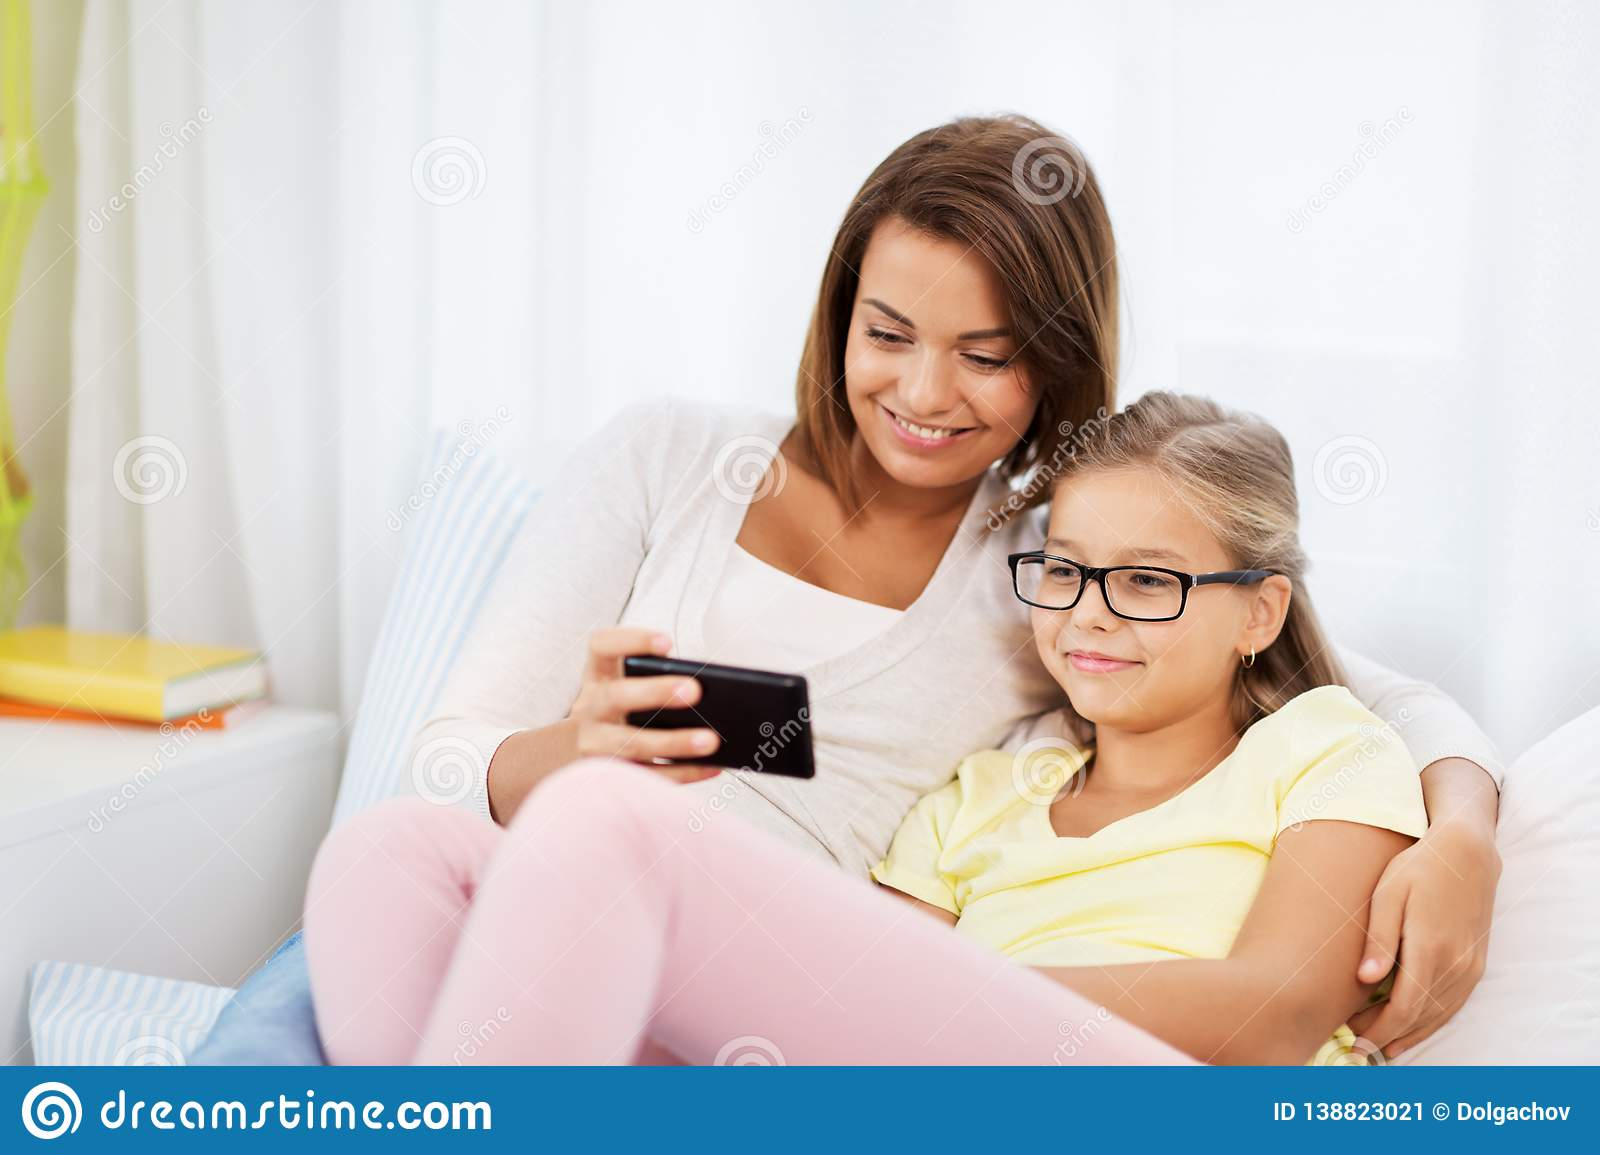 Happy Mother And Daughter With Smartphone At Home Stock